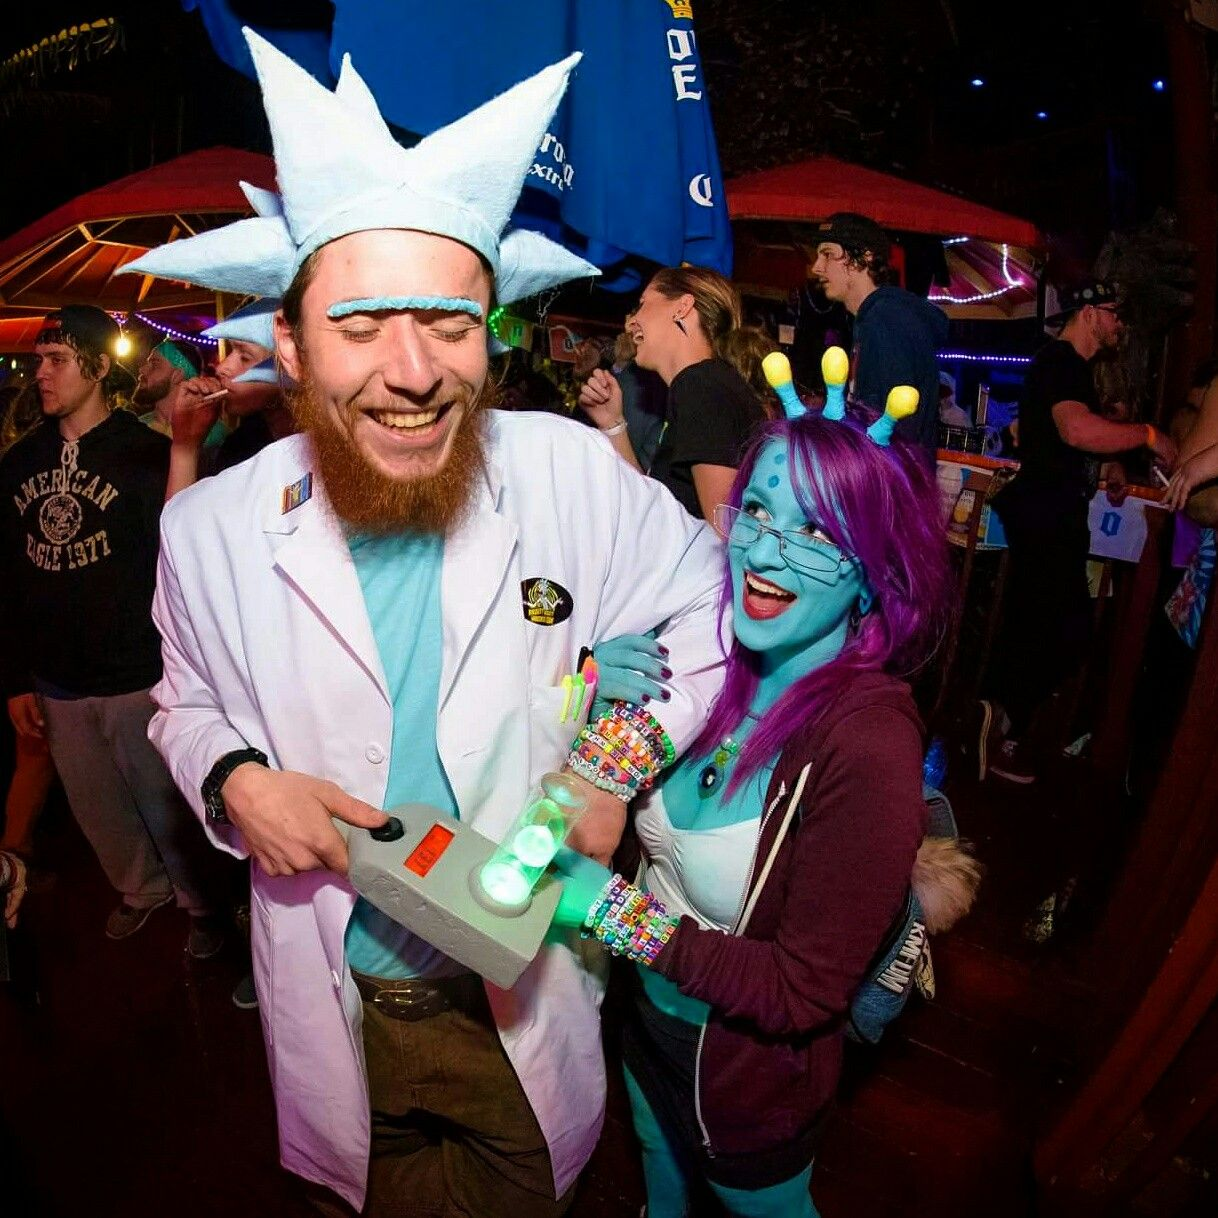 Rick & Unity! We made the costumes ourselves :) #rick #unity